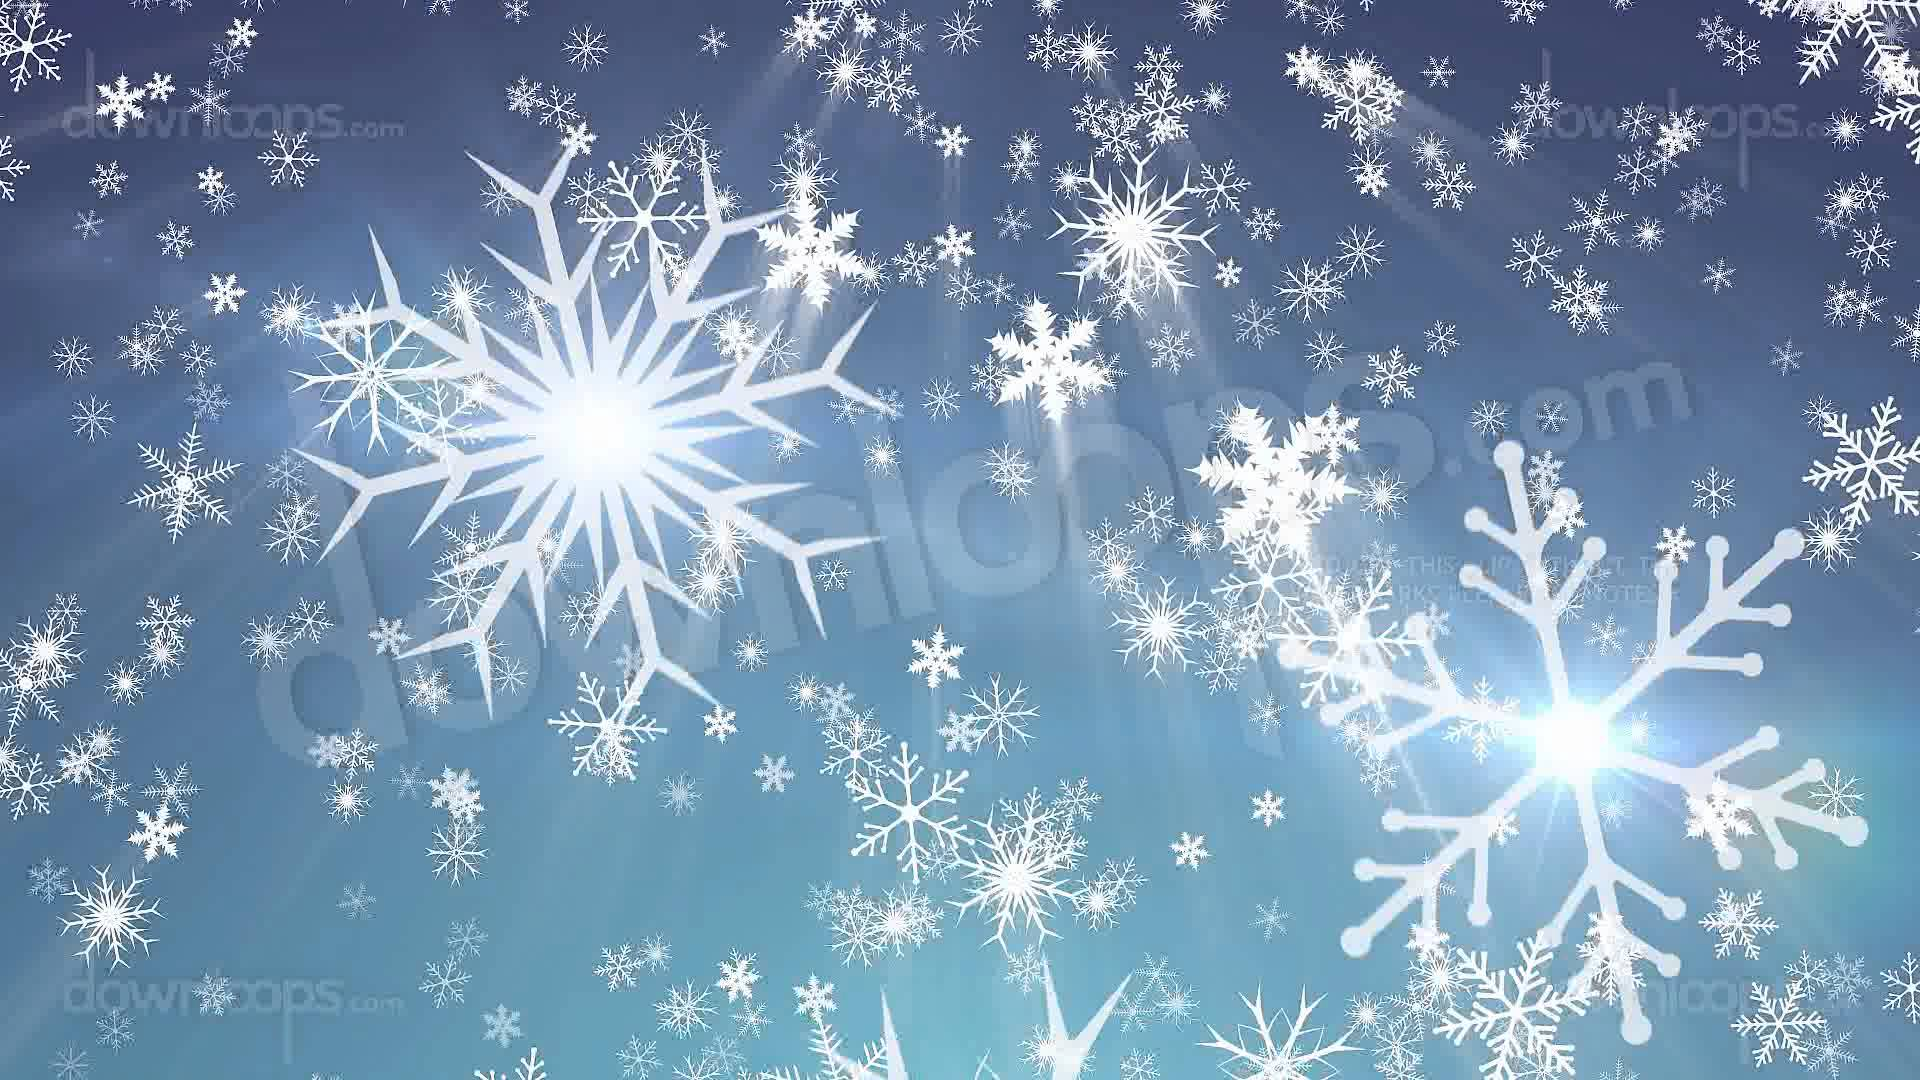 Moving clipart snow #8